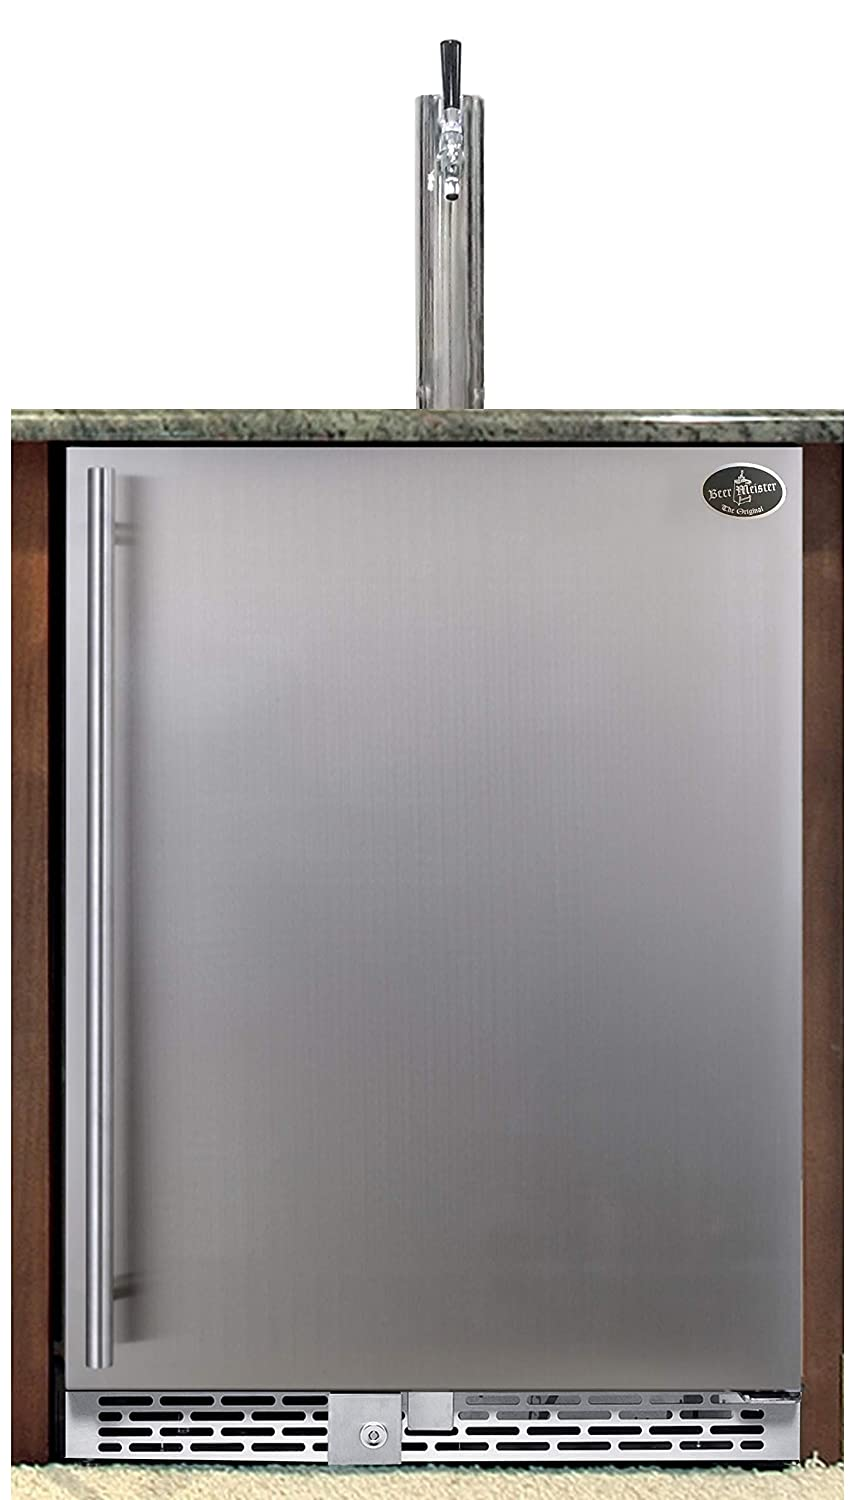 Beer Meister Single Tower with kegerator Excellent Door Built-in Don't miss the campaign Stainless